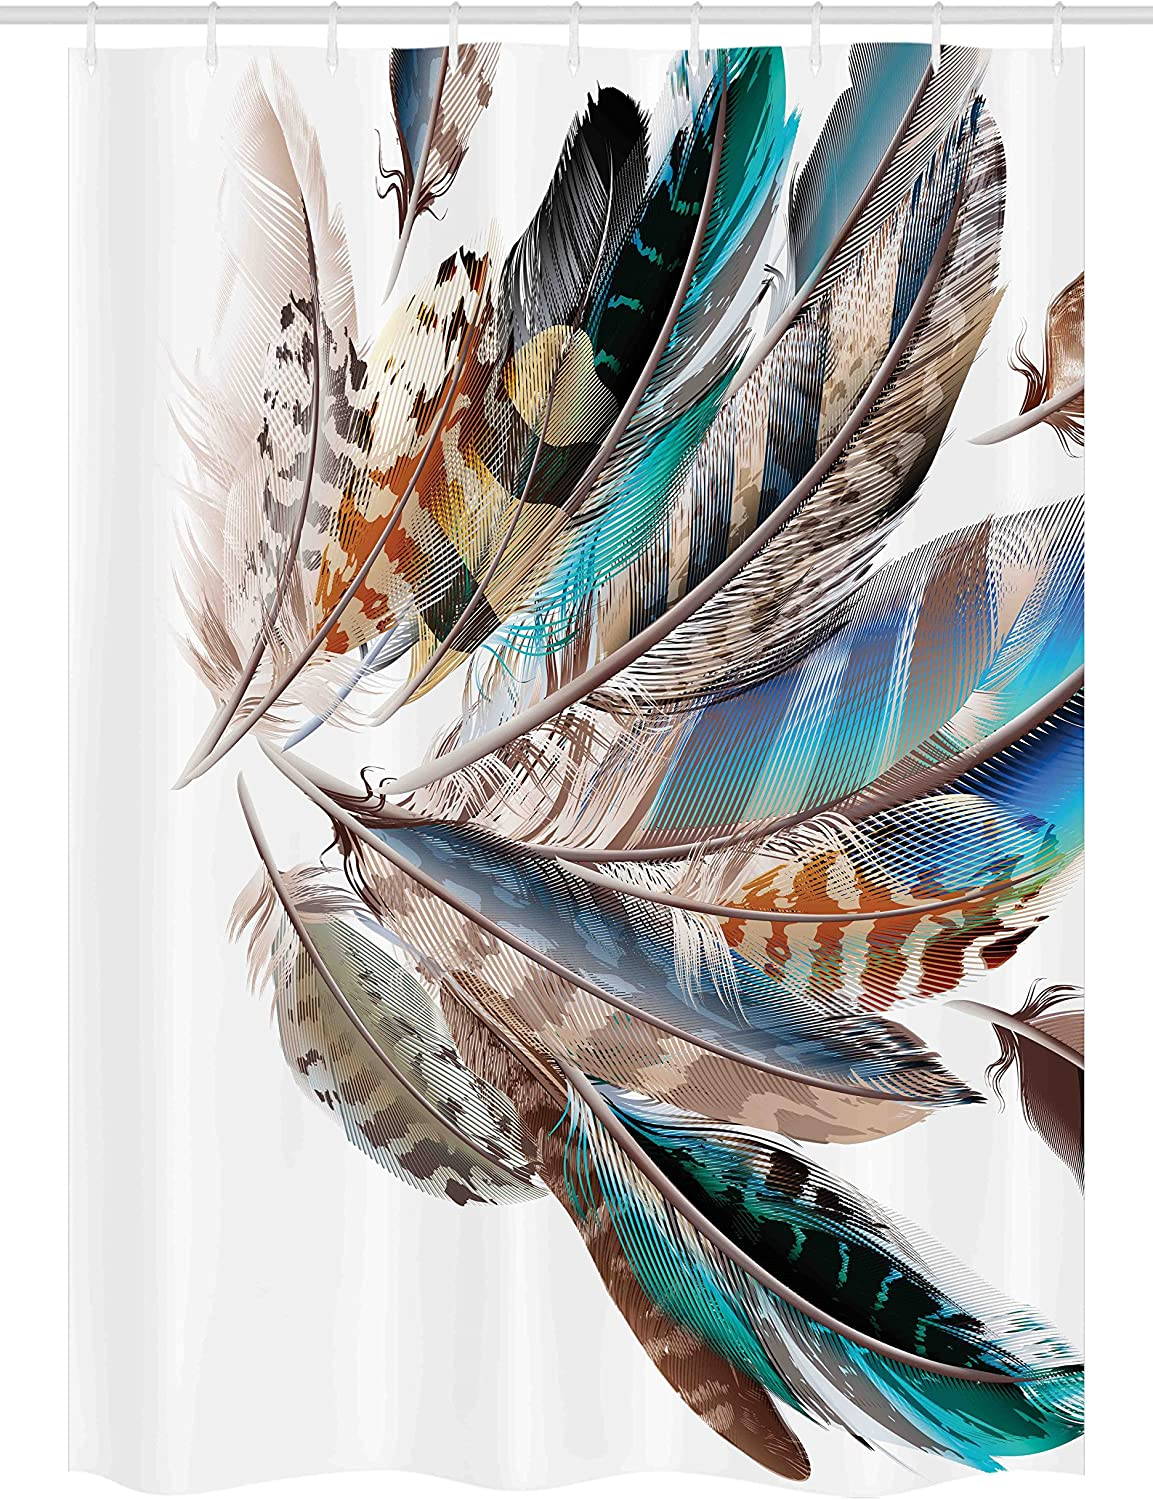 "Ambesonne Feathers Stall Shower Curtain, Vaned Types and Natal Contour Flight Bird Feathers and Animal Skin Element Print, Fabric Bathroom Decor Set with Hooks, 54"" X 78"", Teal Brown"